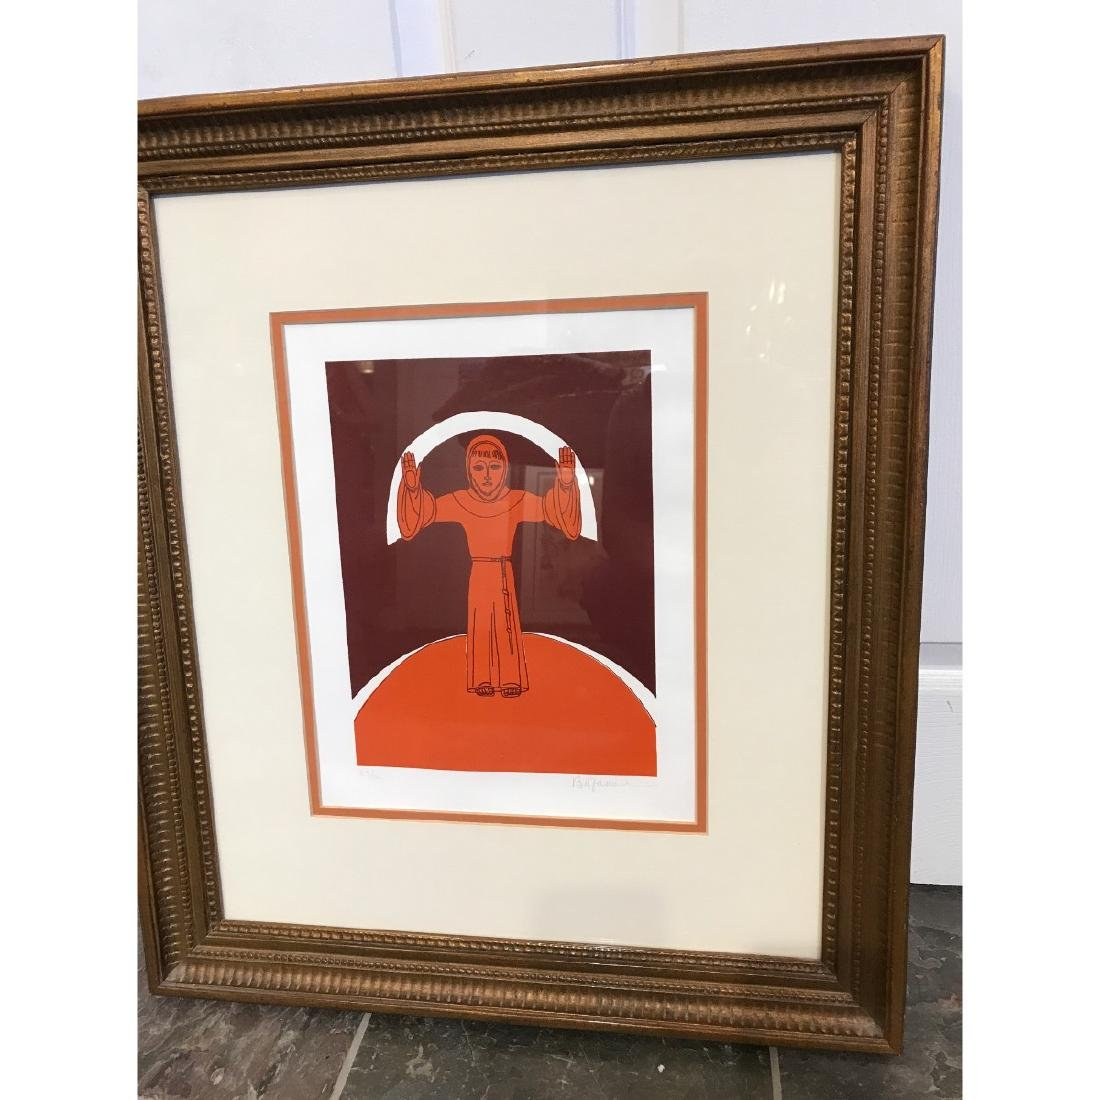 Limited Edition Print of a Monk by Bu Fano, Randolph